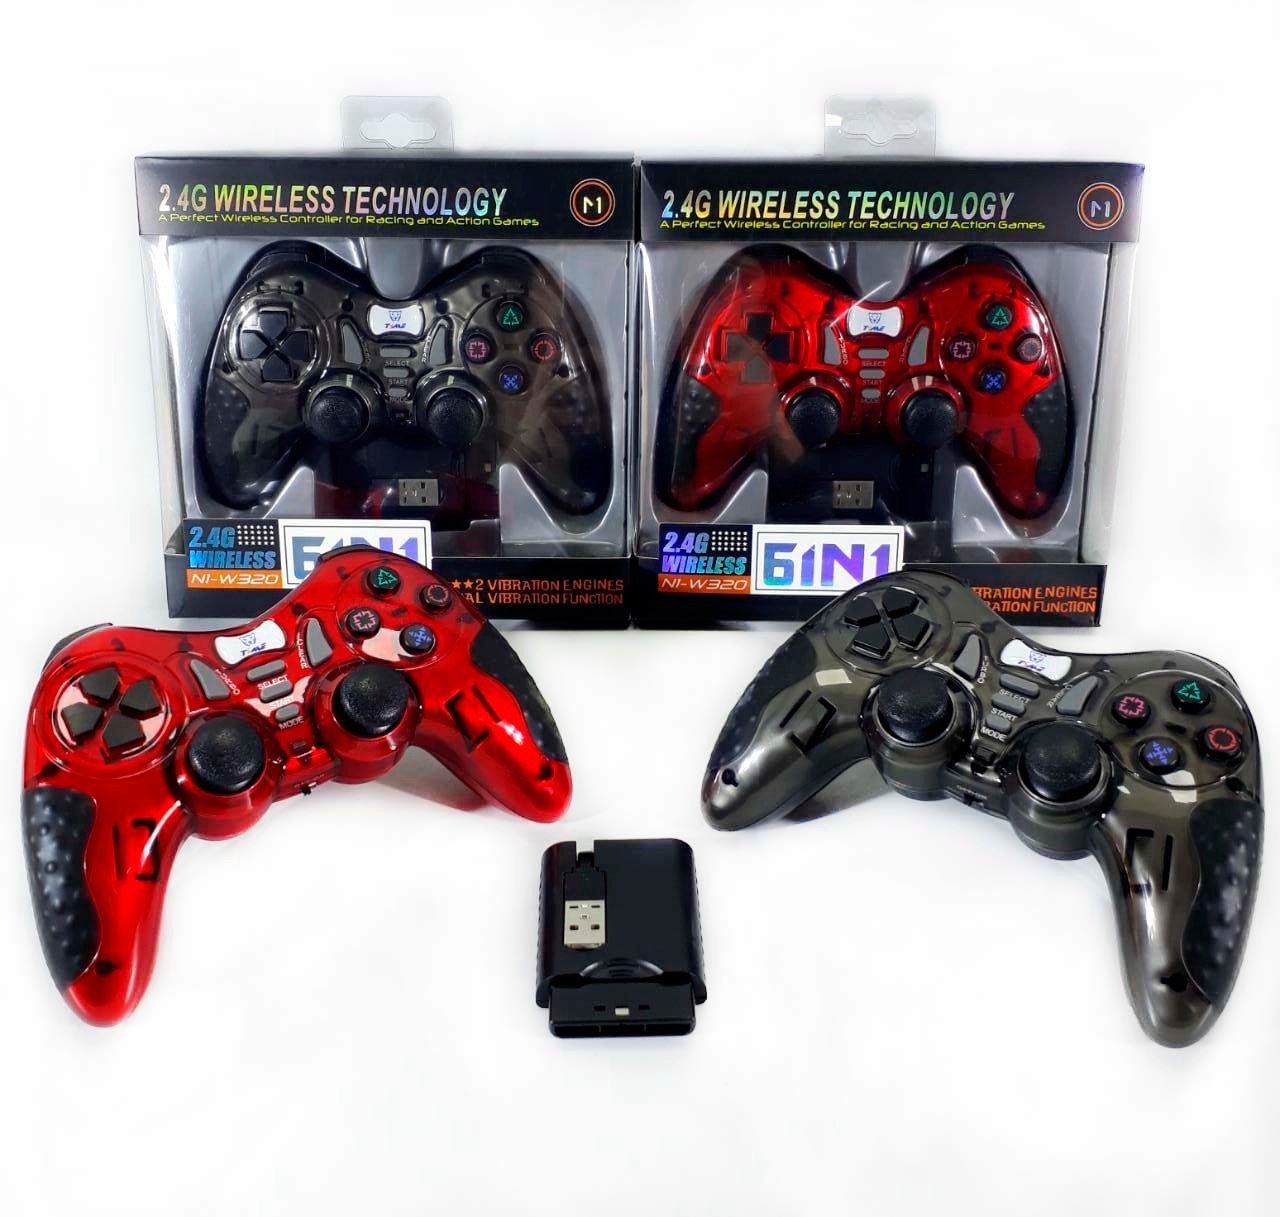 JOYSTICK INALAMBRICO 6 EN 1 PS3/PS3/PC/ANDROID